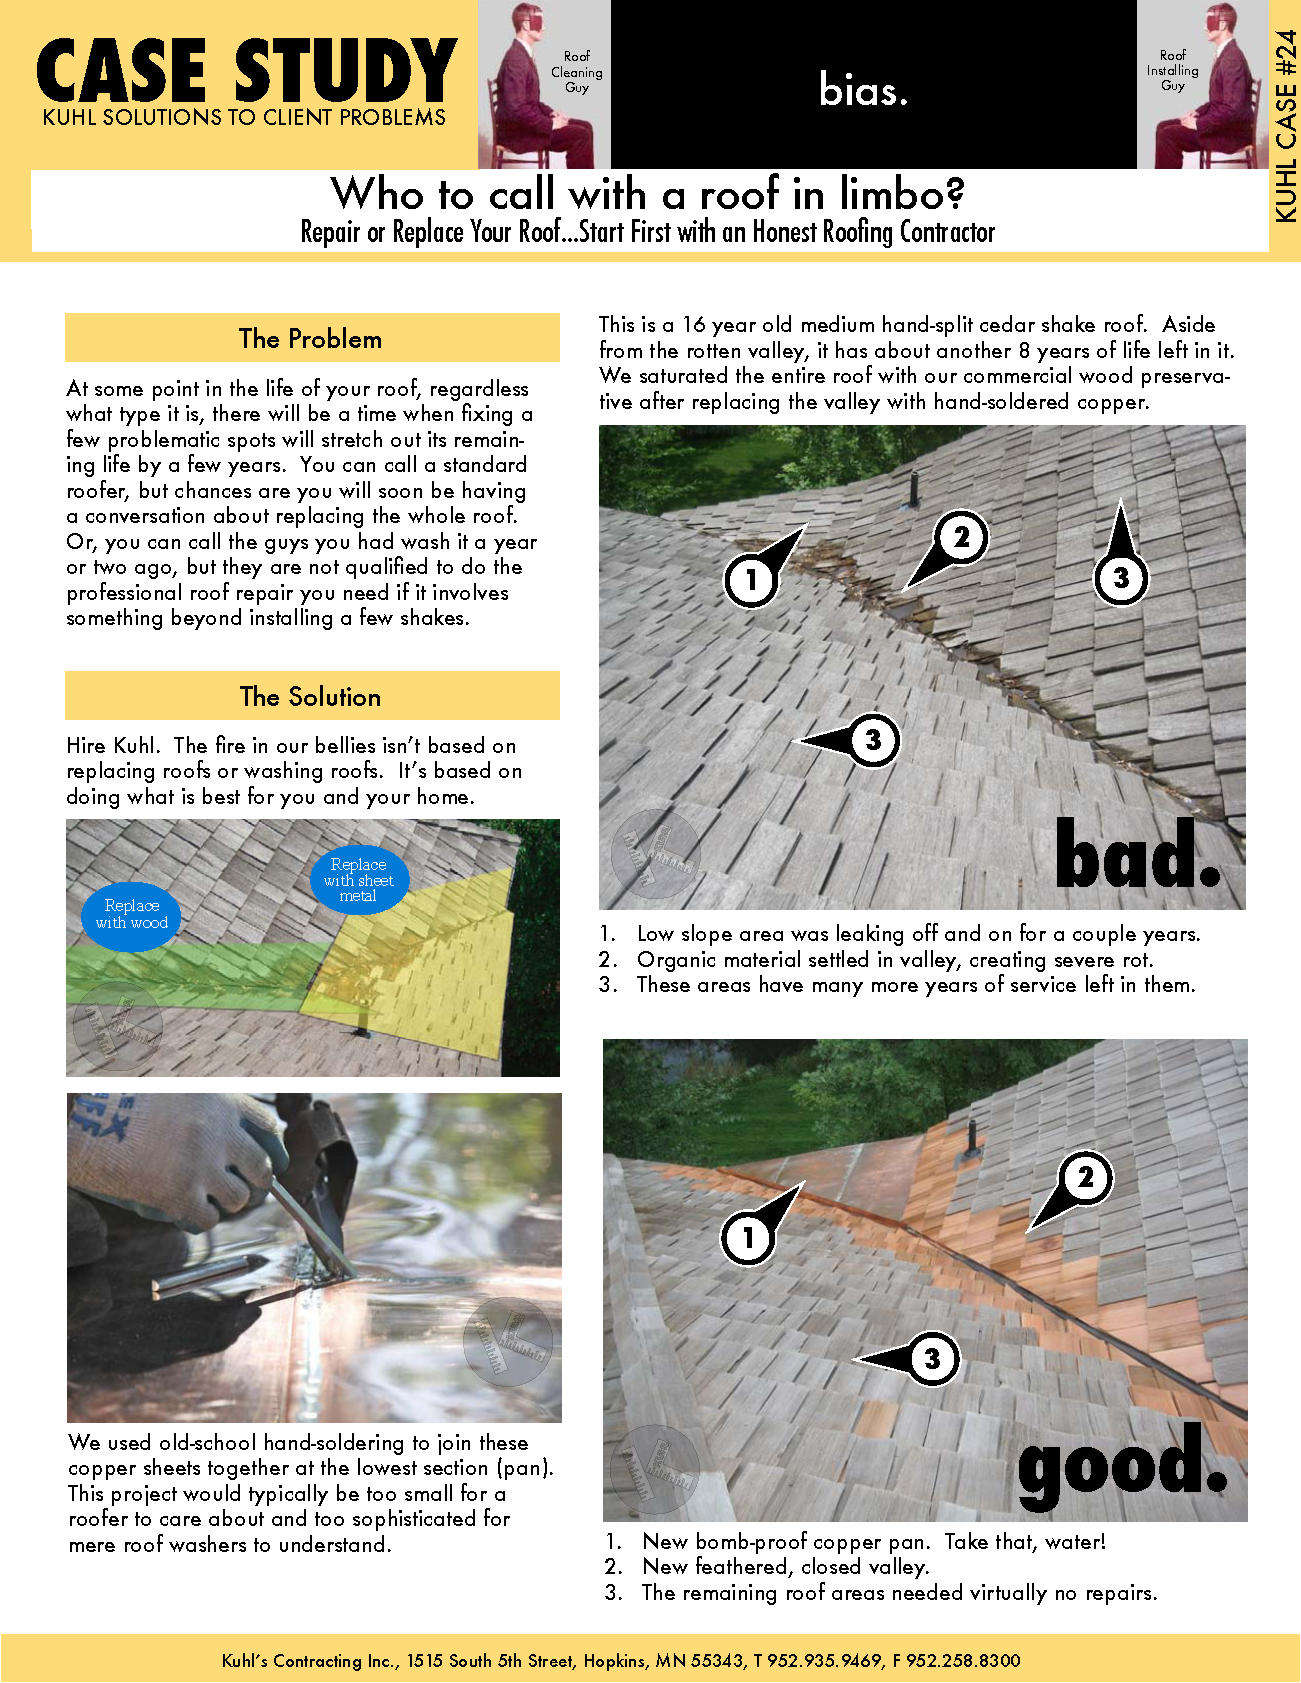 Who to call with a roof in limbo: Should You Replace or Repair Your Roof